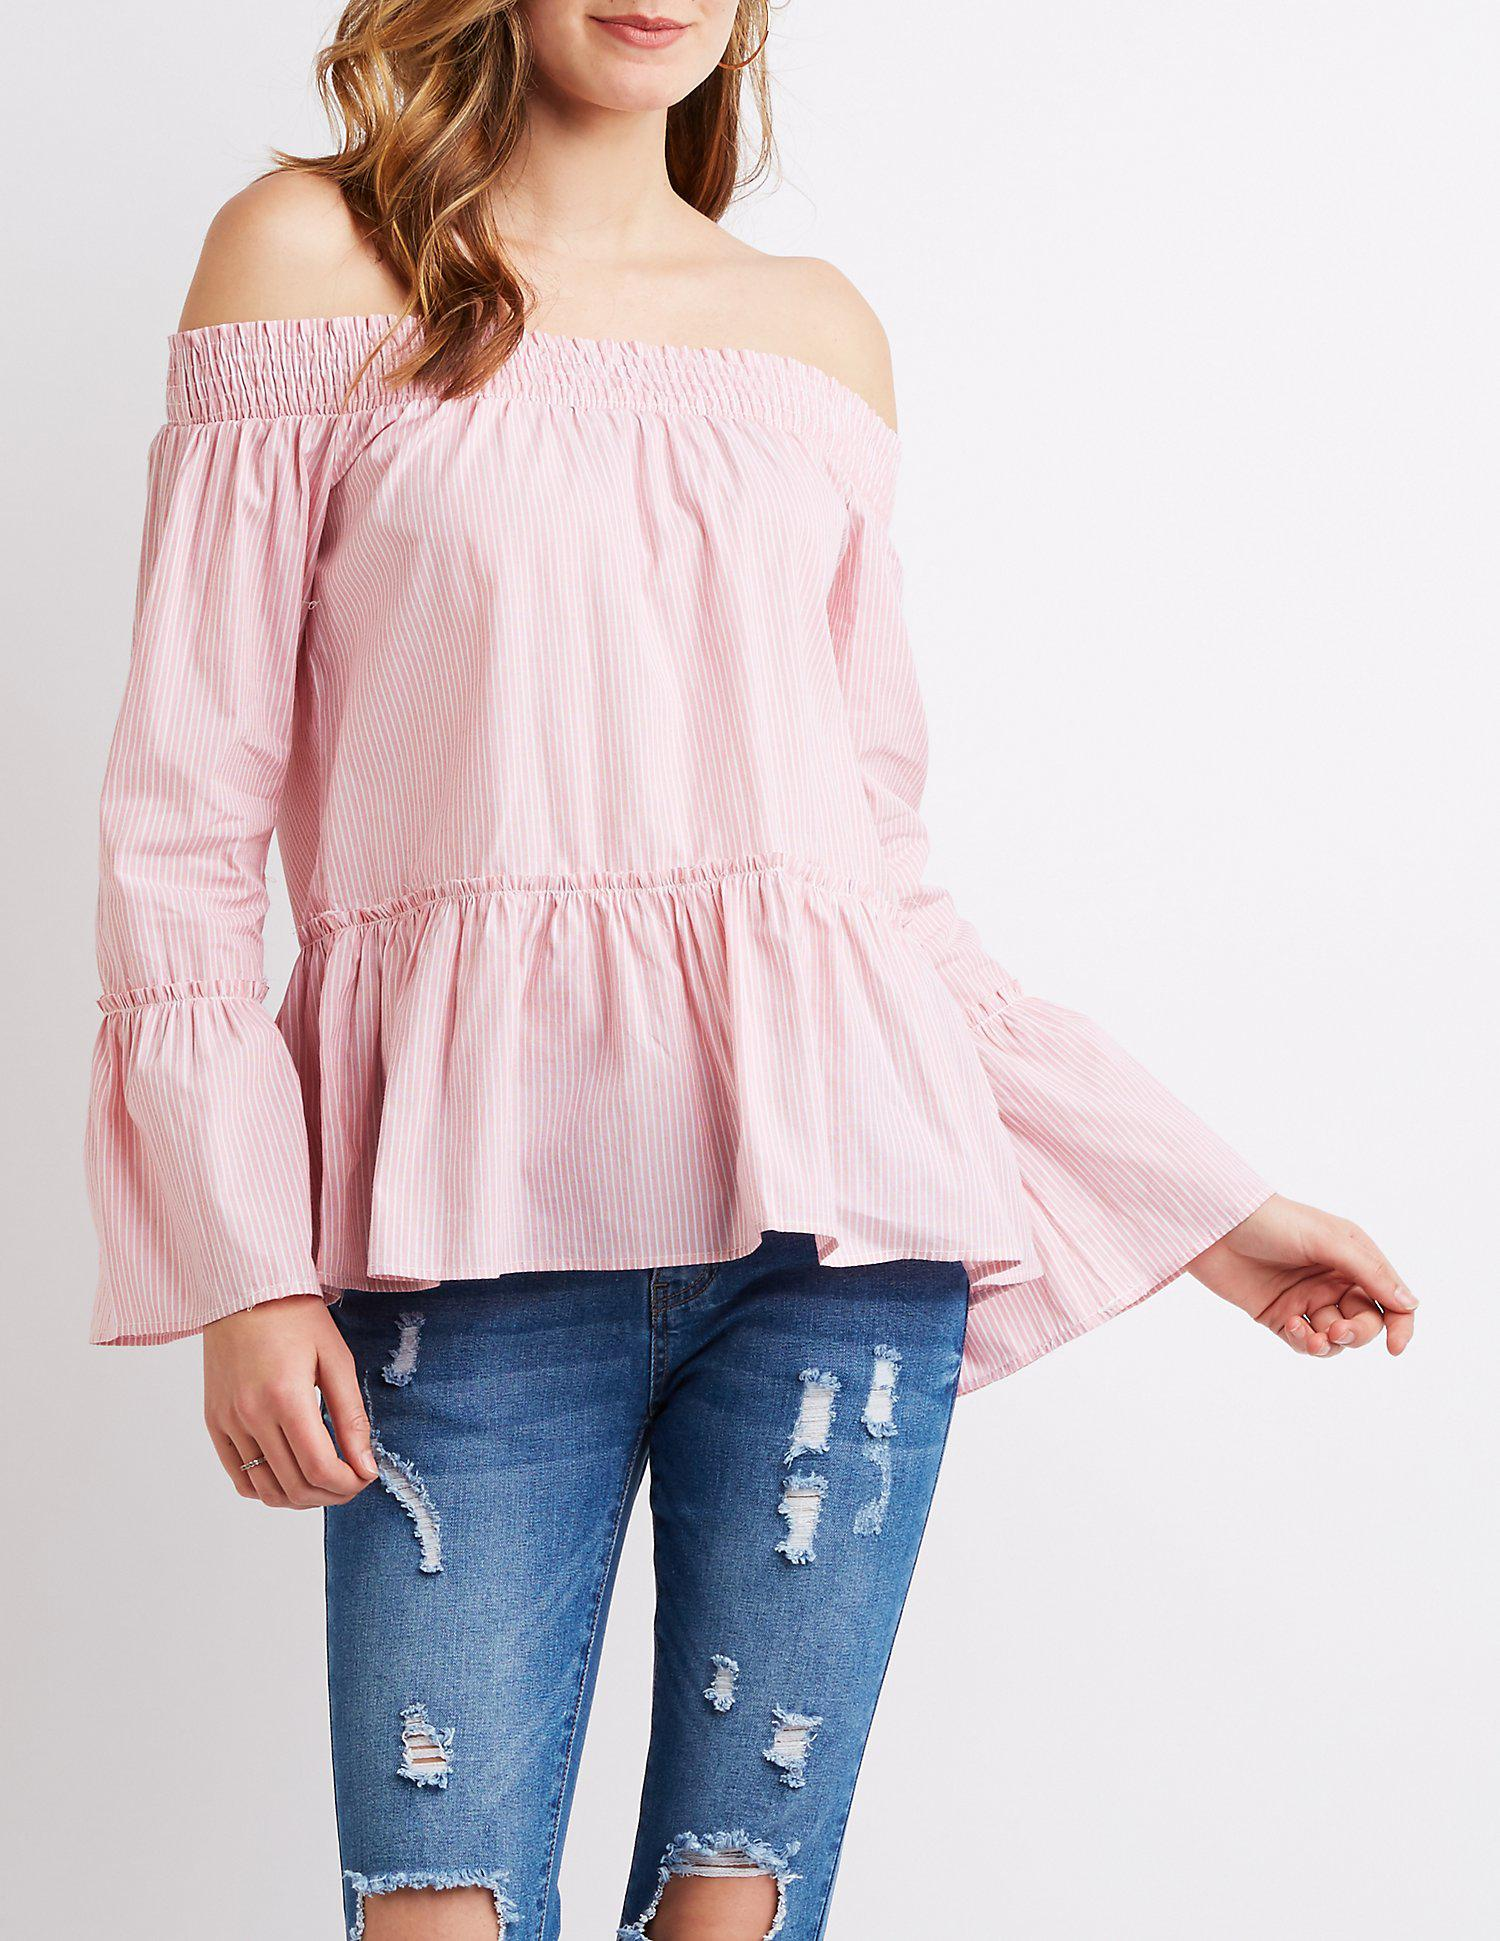 605258ada0daf Lyst - Charlotte Russe Striped Off-the-shoulder Top in Pink